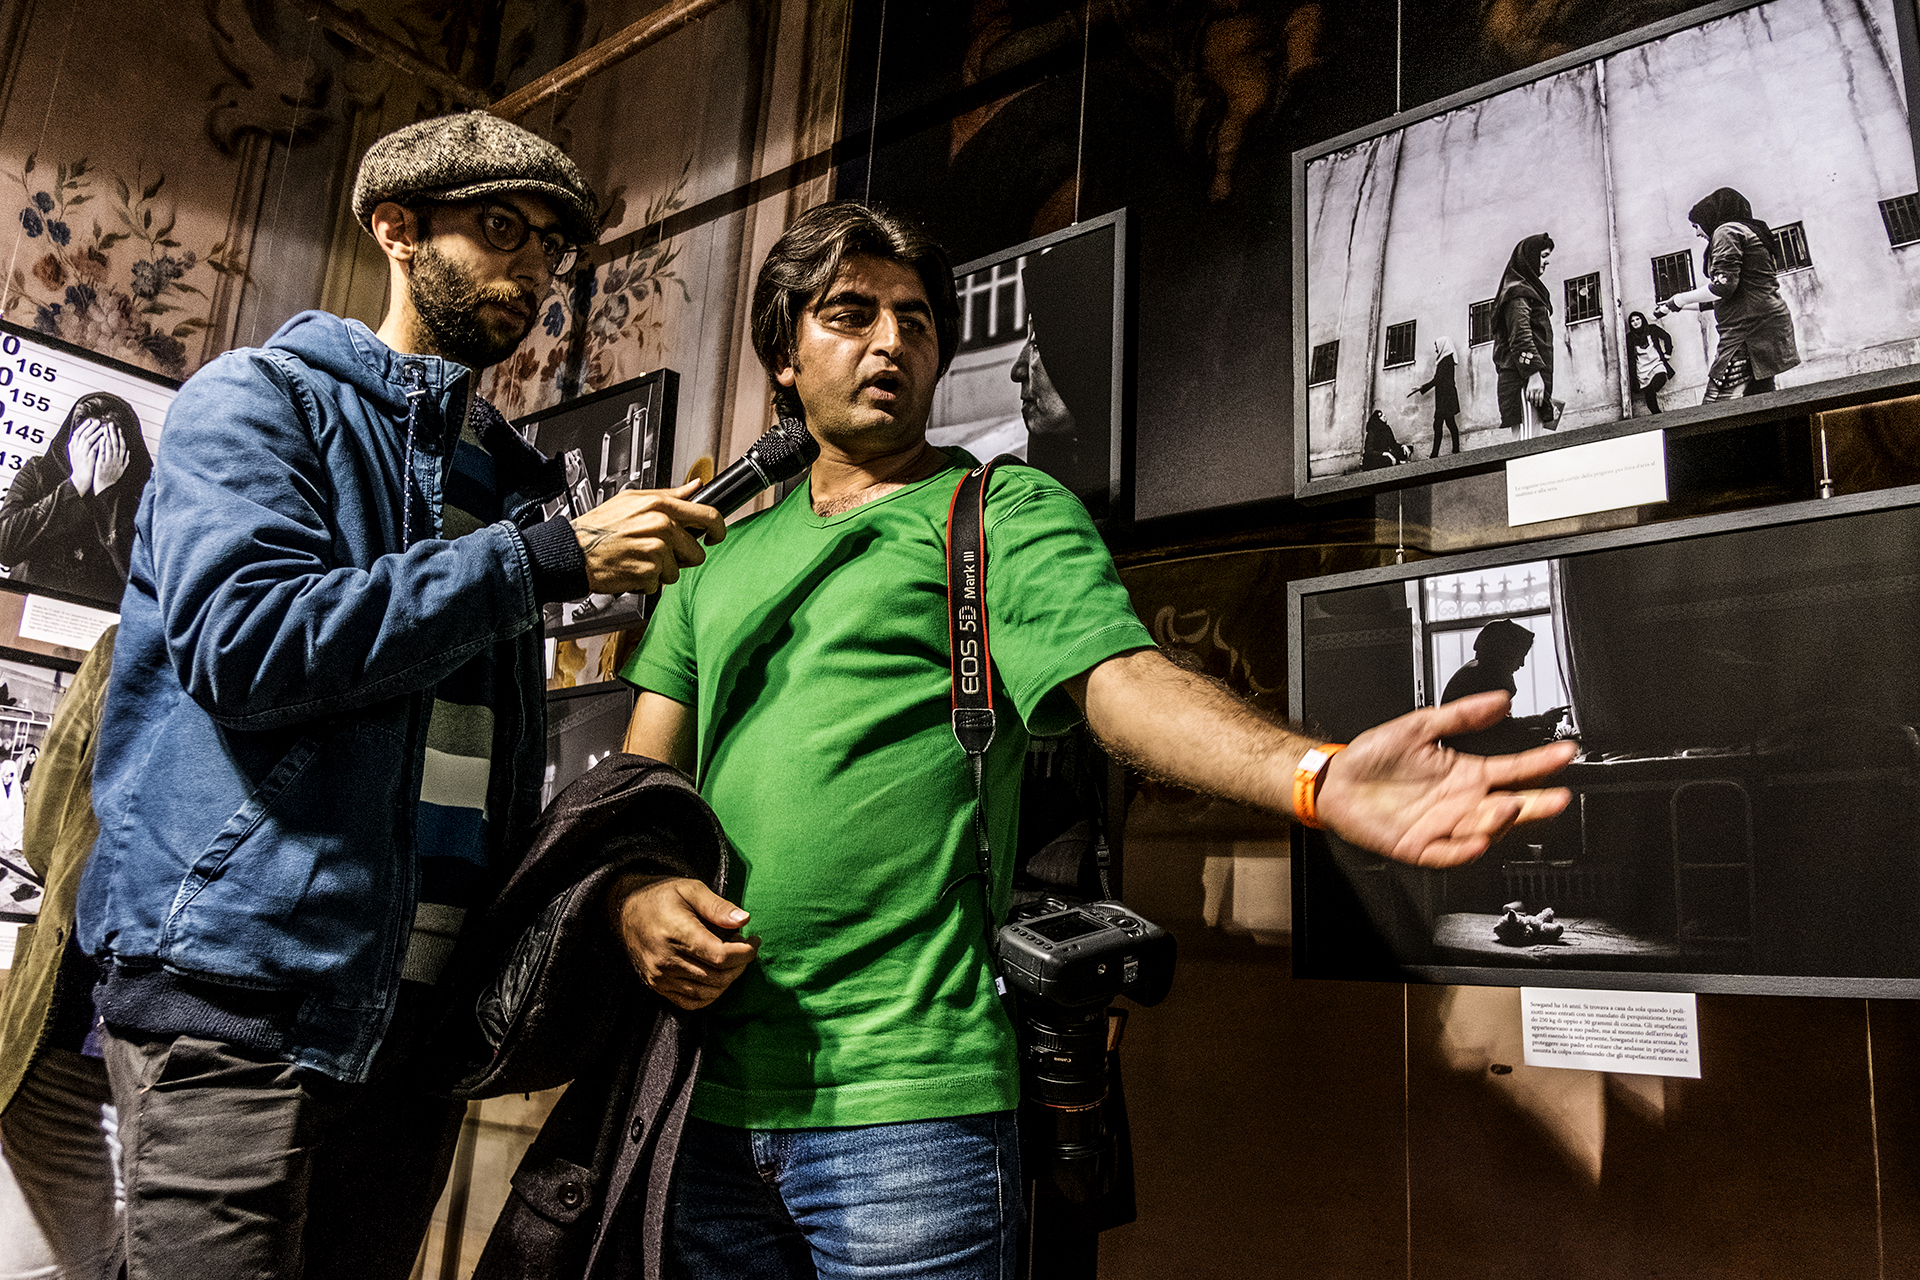 Sadegh Souri during the guided tour of his exhibition Waiting Girls, held at Palazzo Barni in Lodi. © FPmag